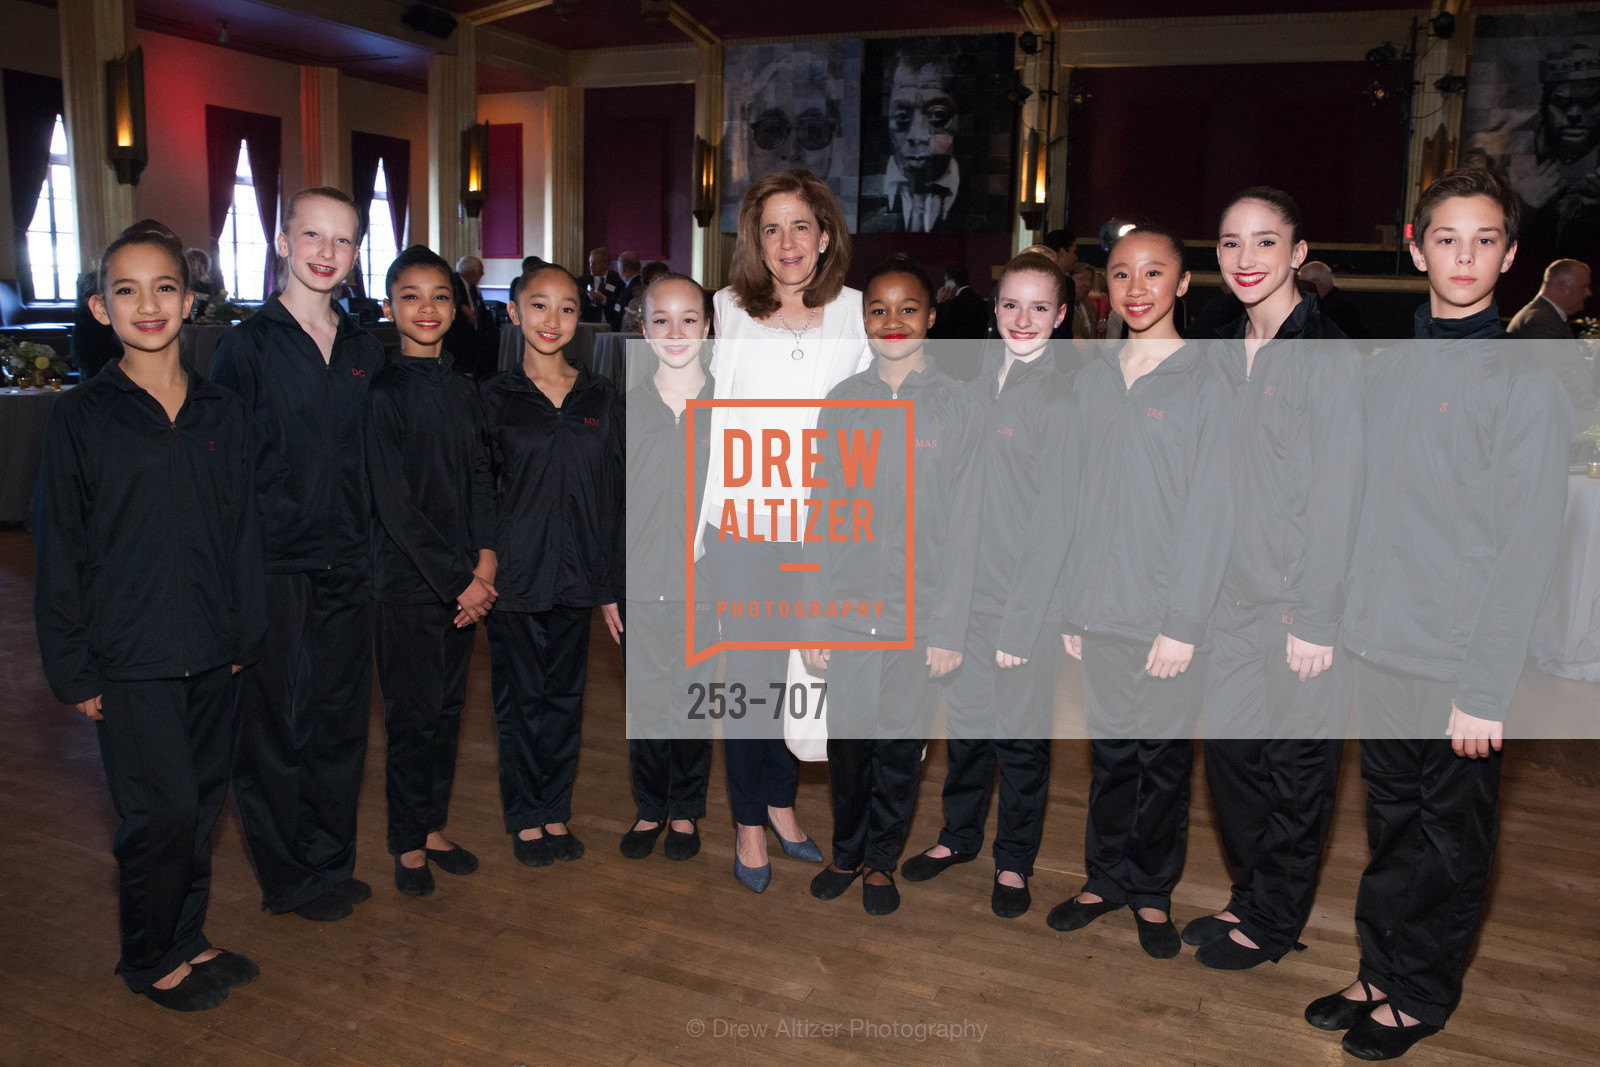 Anne Gust Brown, Students, OAKLAND SCHOOL FOR THE ARTS Gala 2015 with Governor Jerry Brown, US, May 8th, 2015,Drew Altizer, Drew Altizer Photography, full-service agency, private events, San Francisco photographer, photographer california